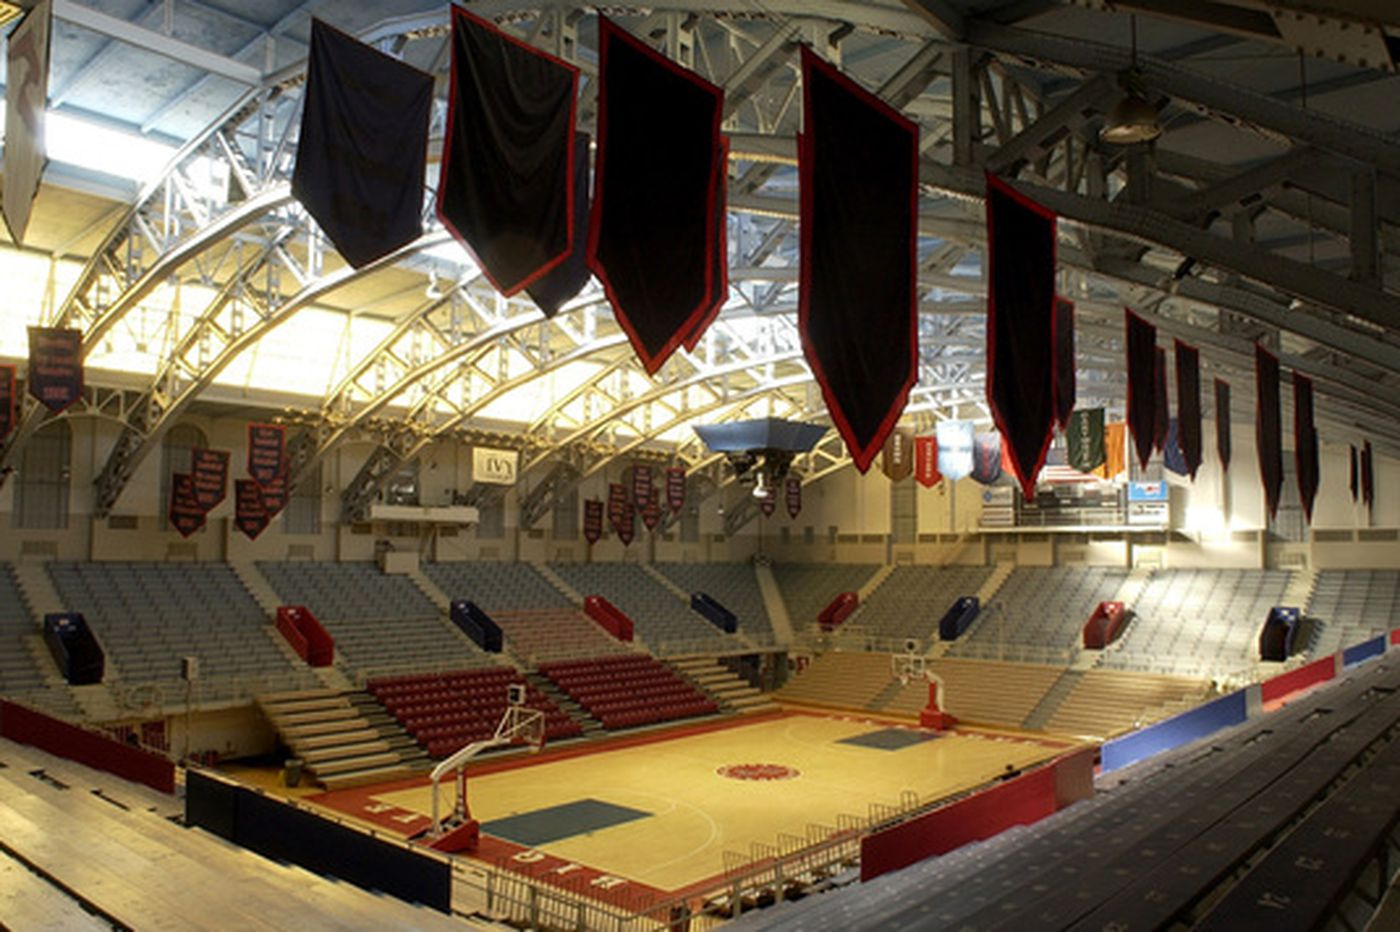 Dick Jerardi: Bidding open on future site of A-10 Tournament; Palestra in running?